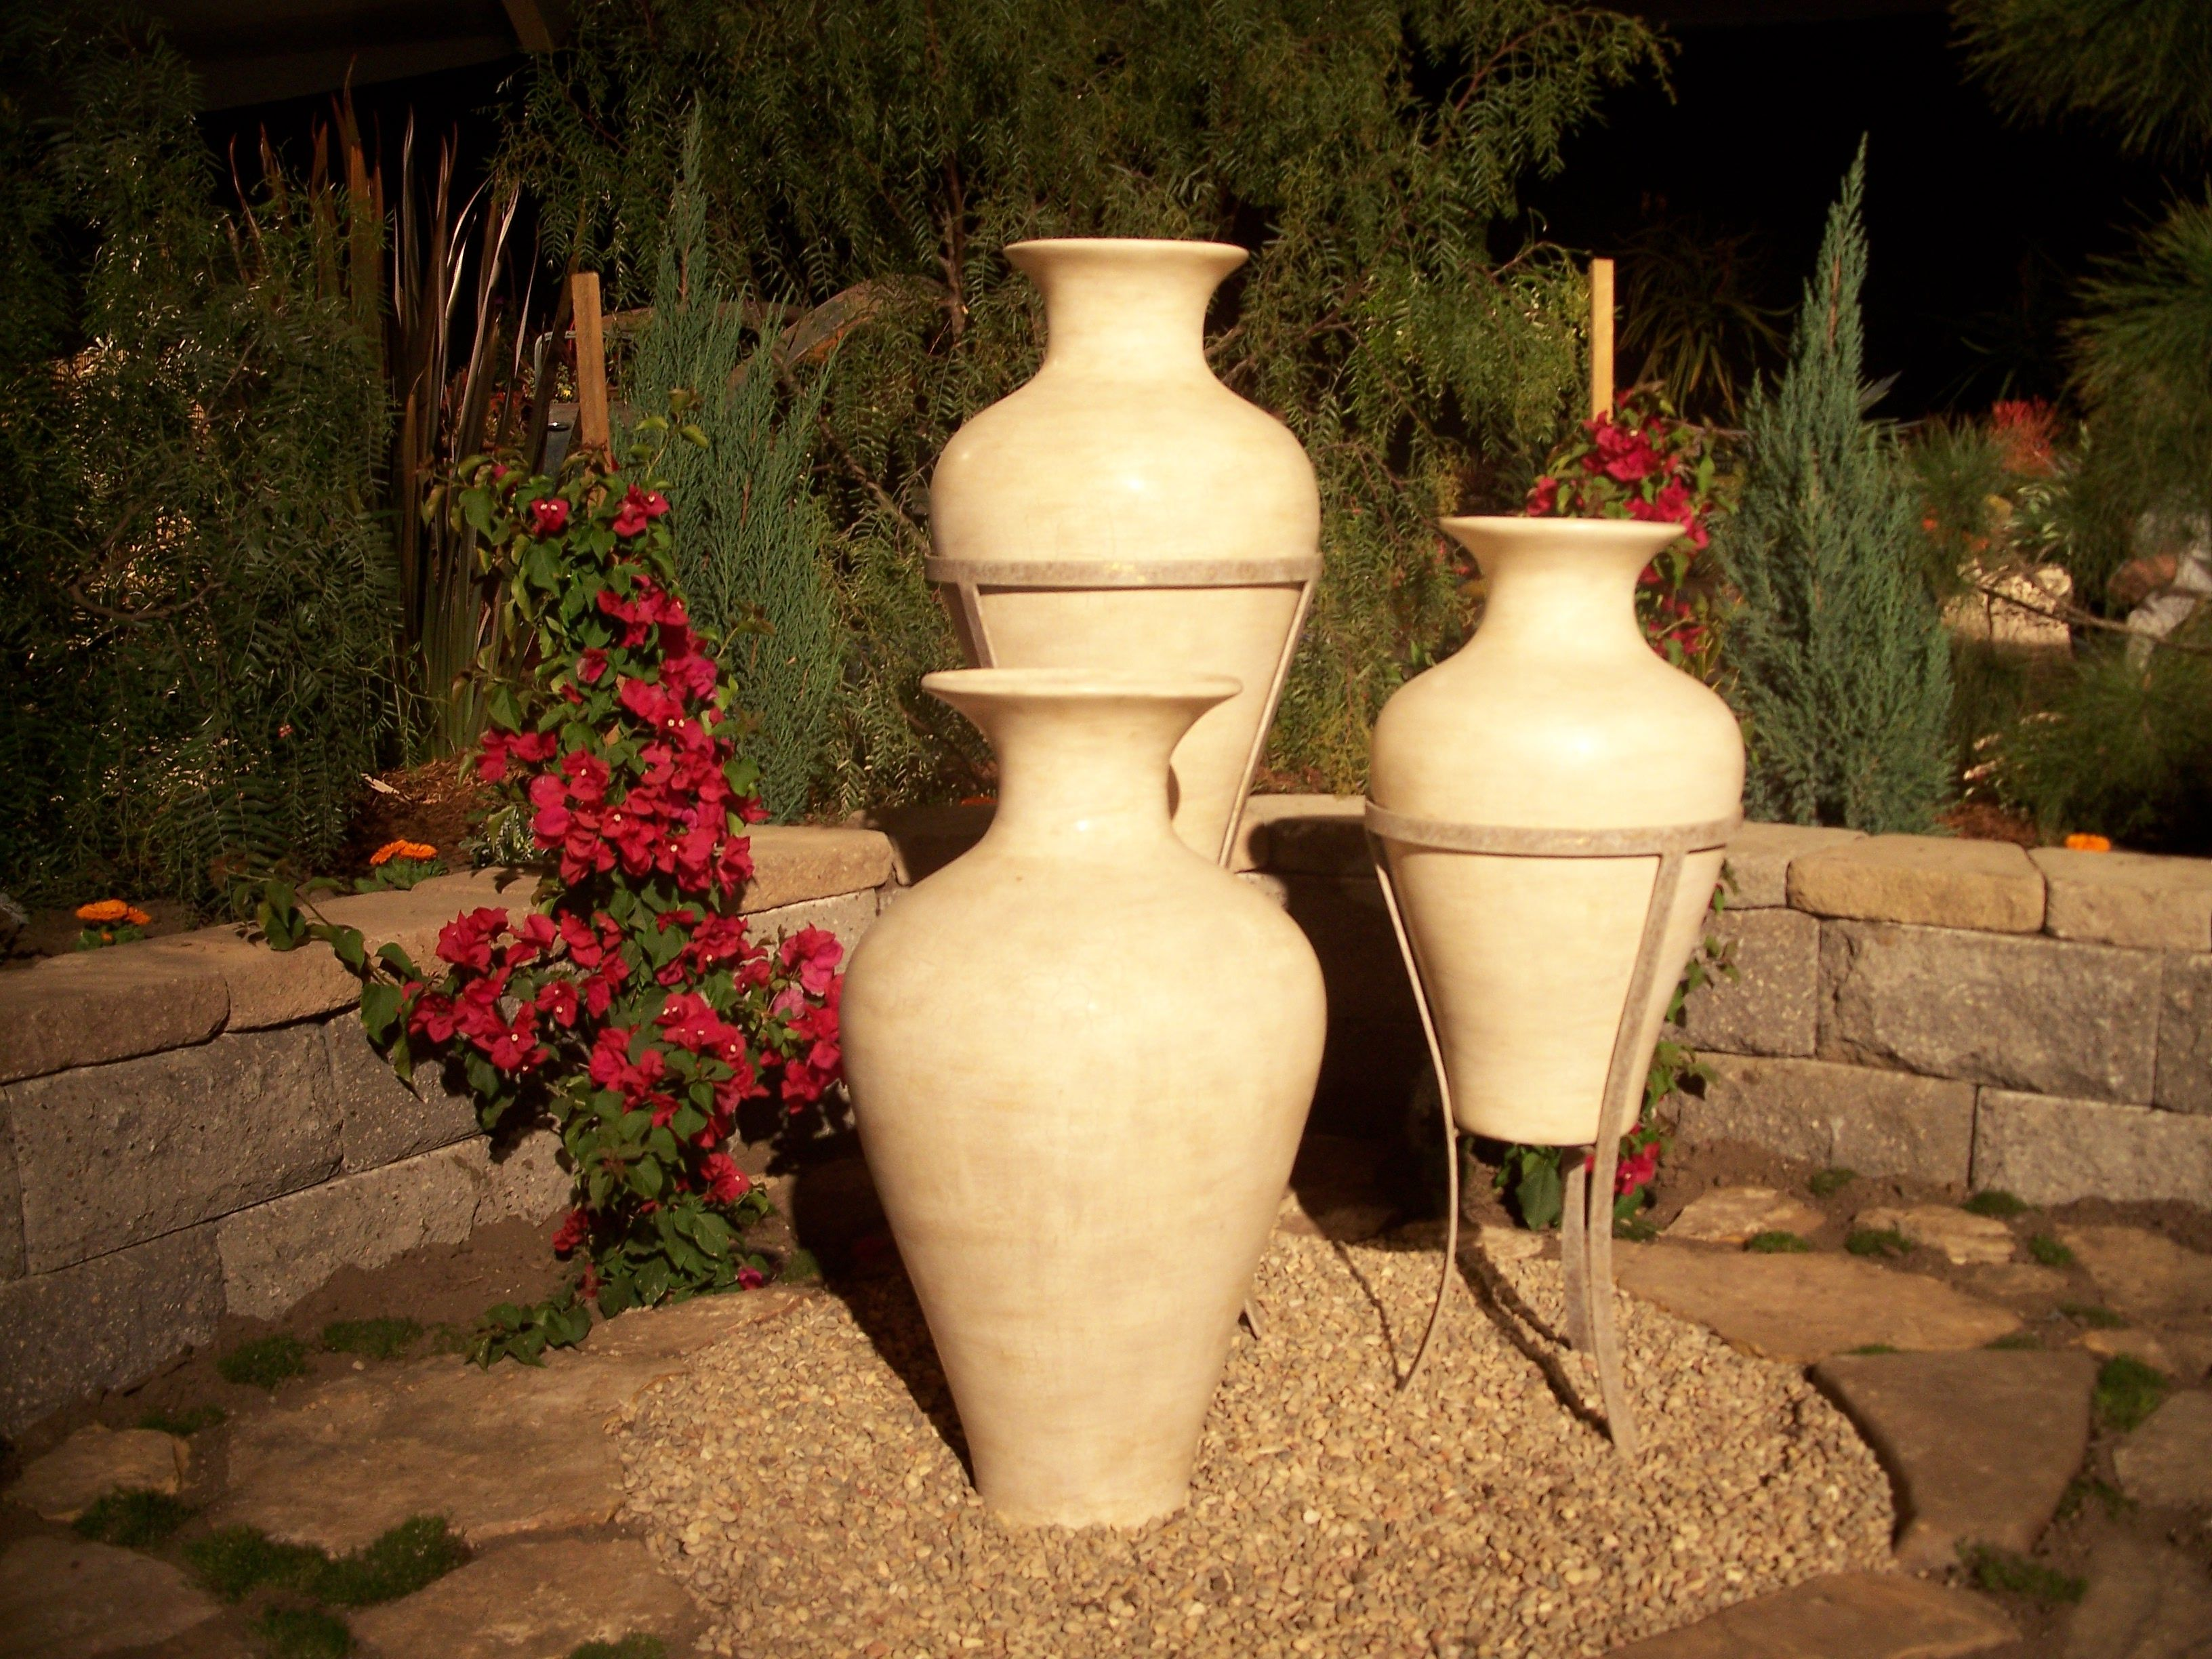 Awesome Vases U0026 Flagstone Featured At Garden Show In San Diego, Ca | Beautiful  Landscapes | Pinterest | Outdoor Gardens And Gardens